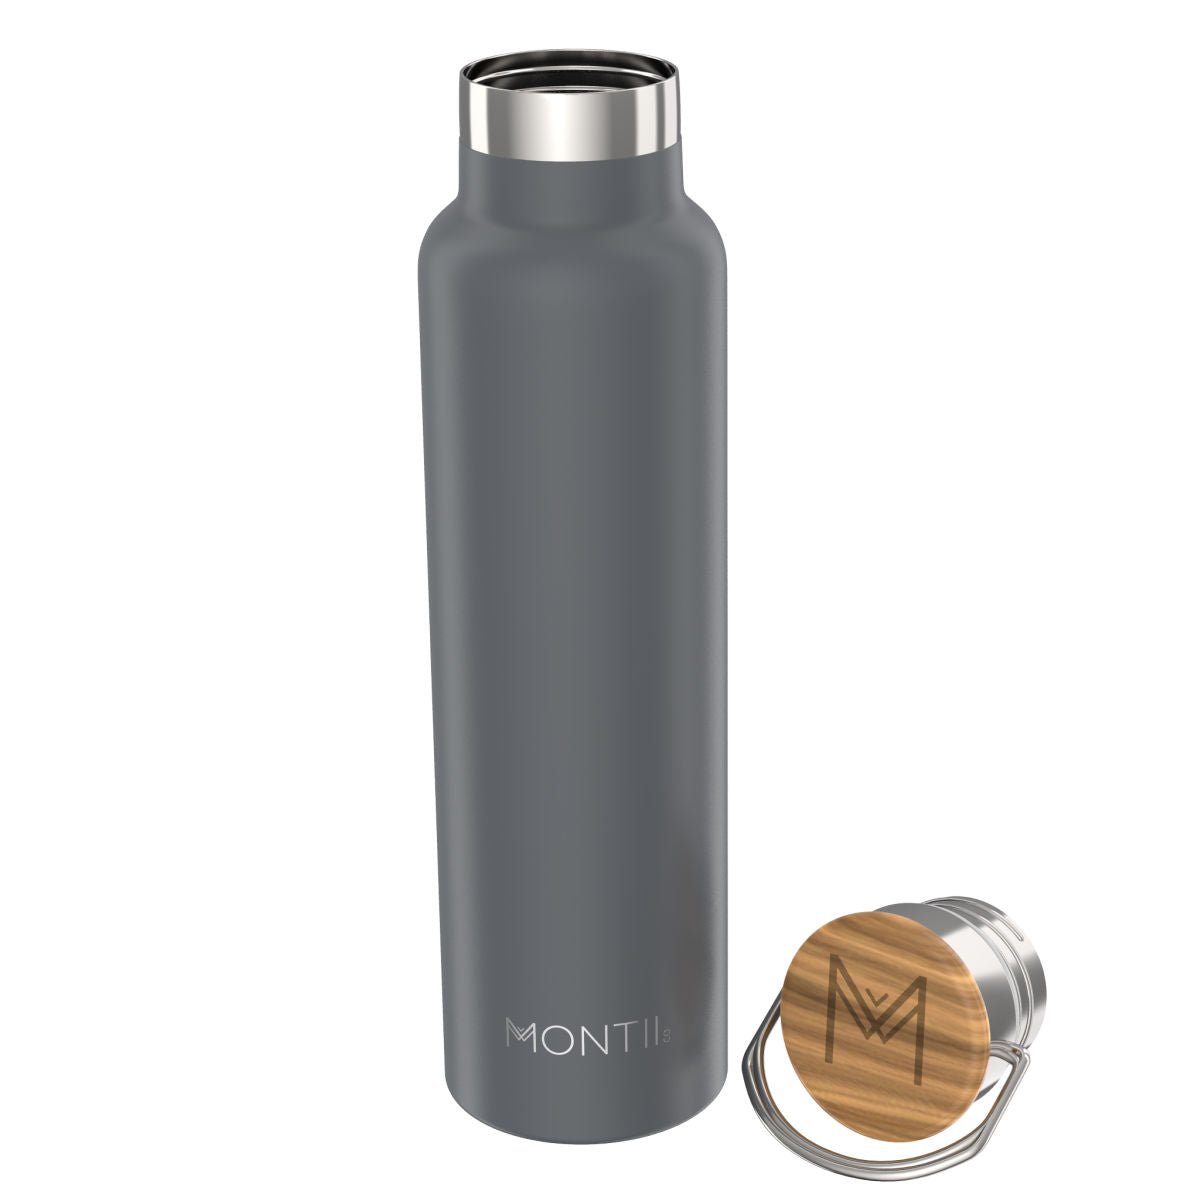 Montii Co Mega Drink Bottle - Grey